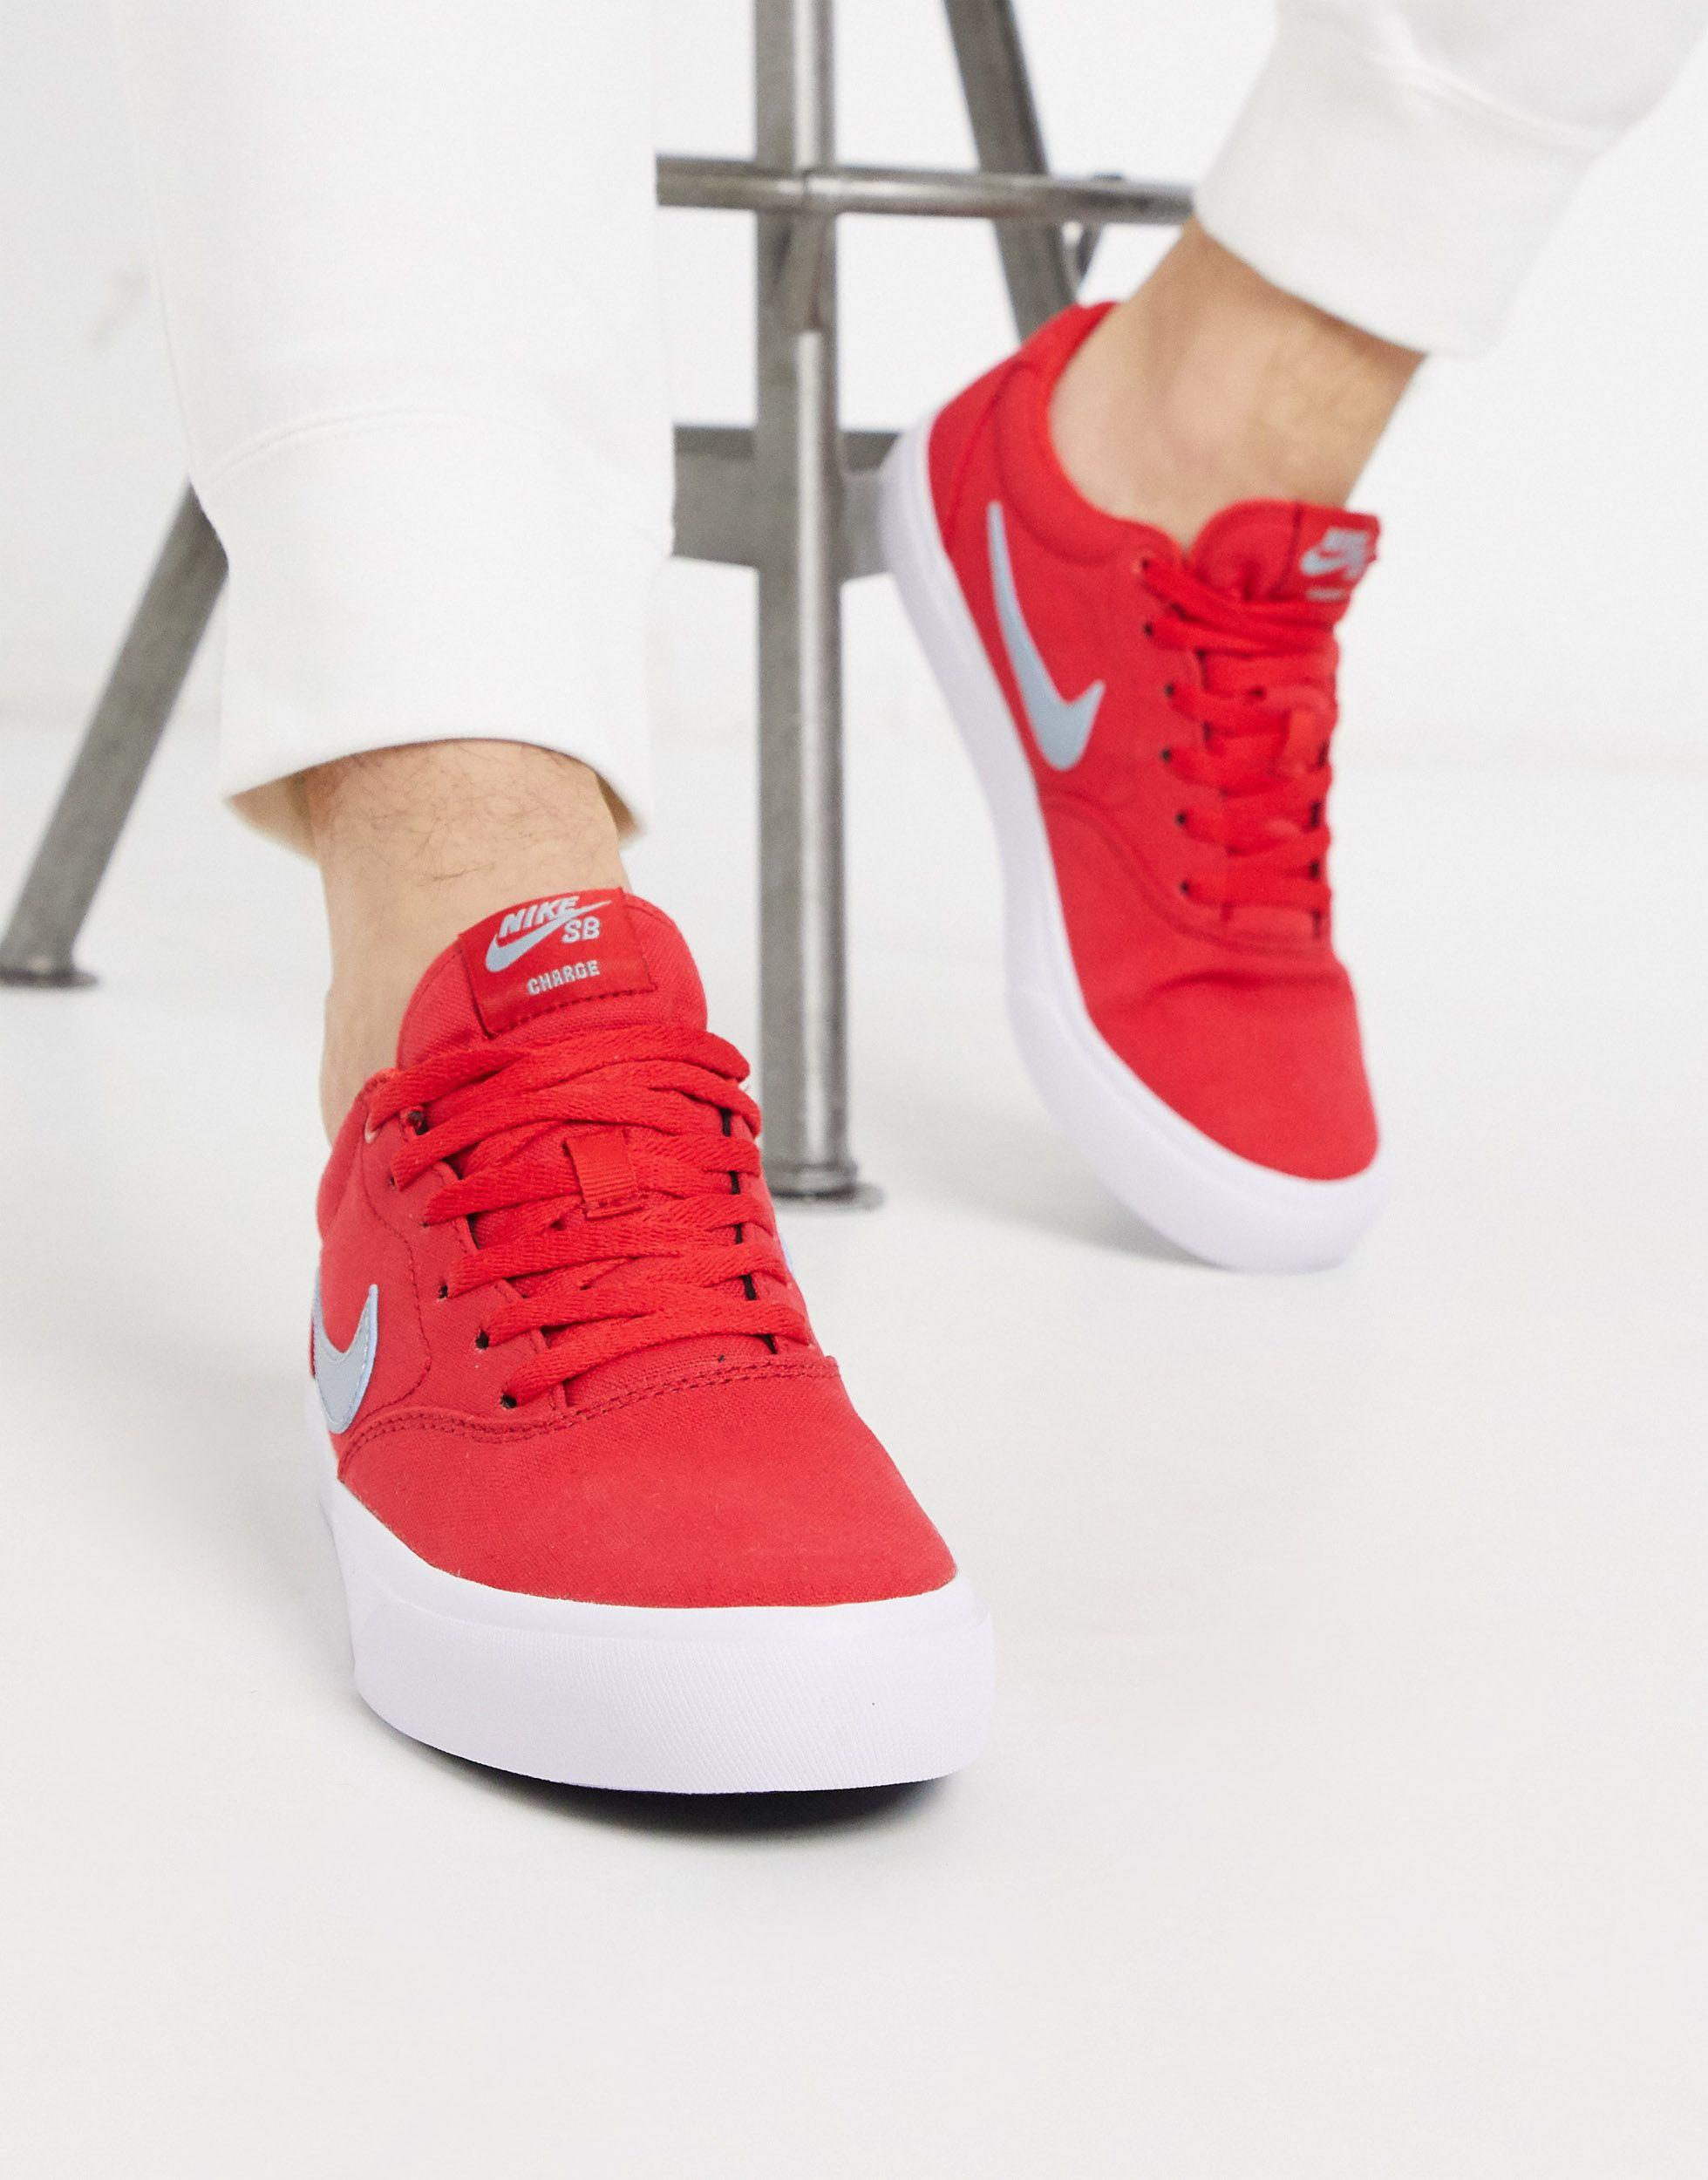 Nike Canvas Charge Cnvs Sb Shoes - Size 8.5 in Red for Men - Lyst